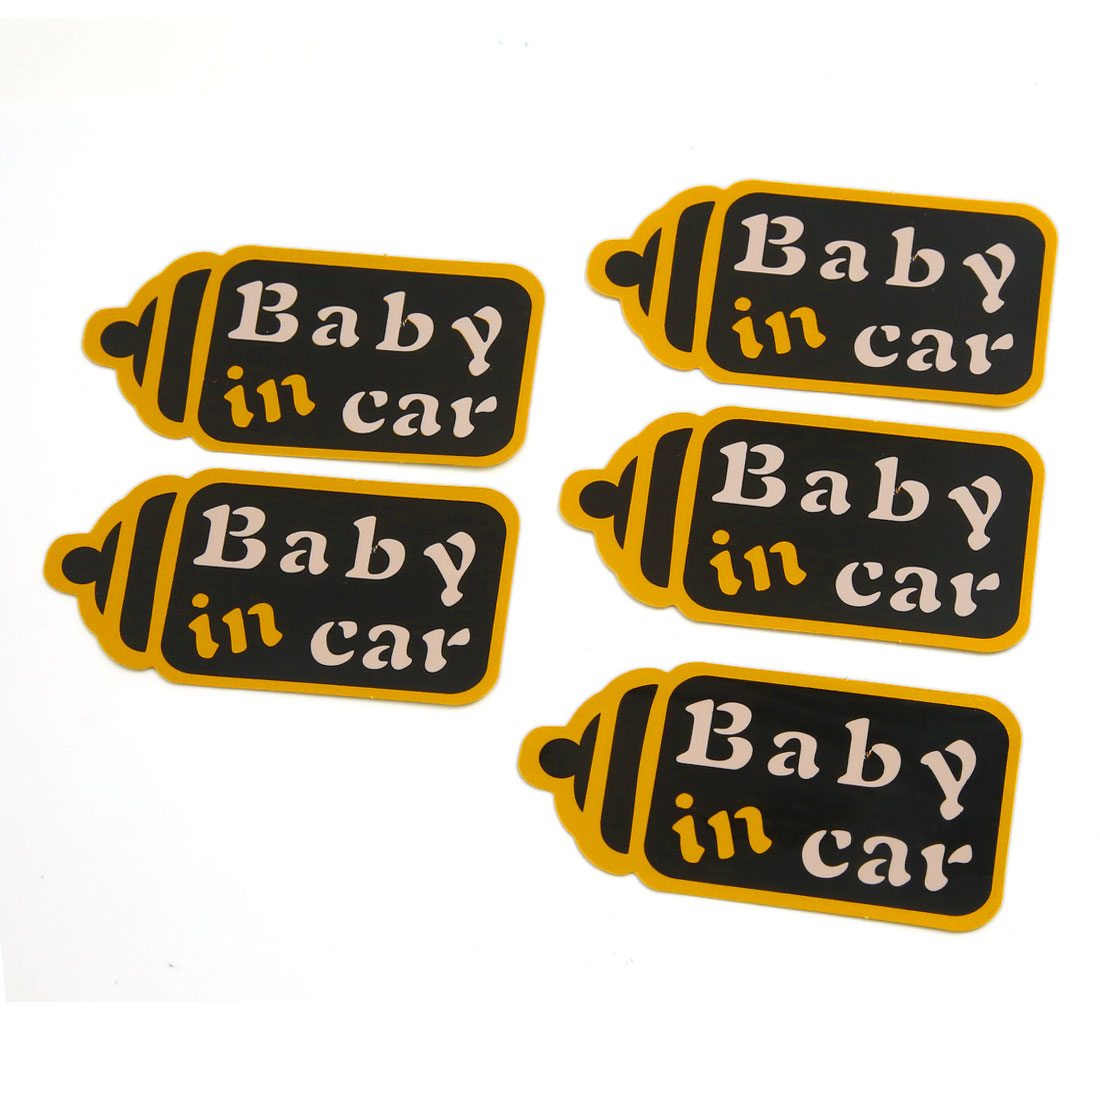 5pcs Baby in car Pattern Stickers Self-adhesive Graphic Decal Adorn 115mm x 60mm